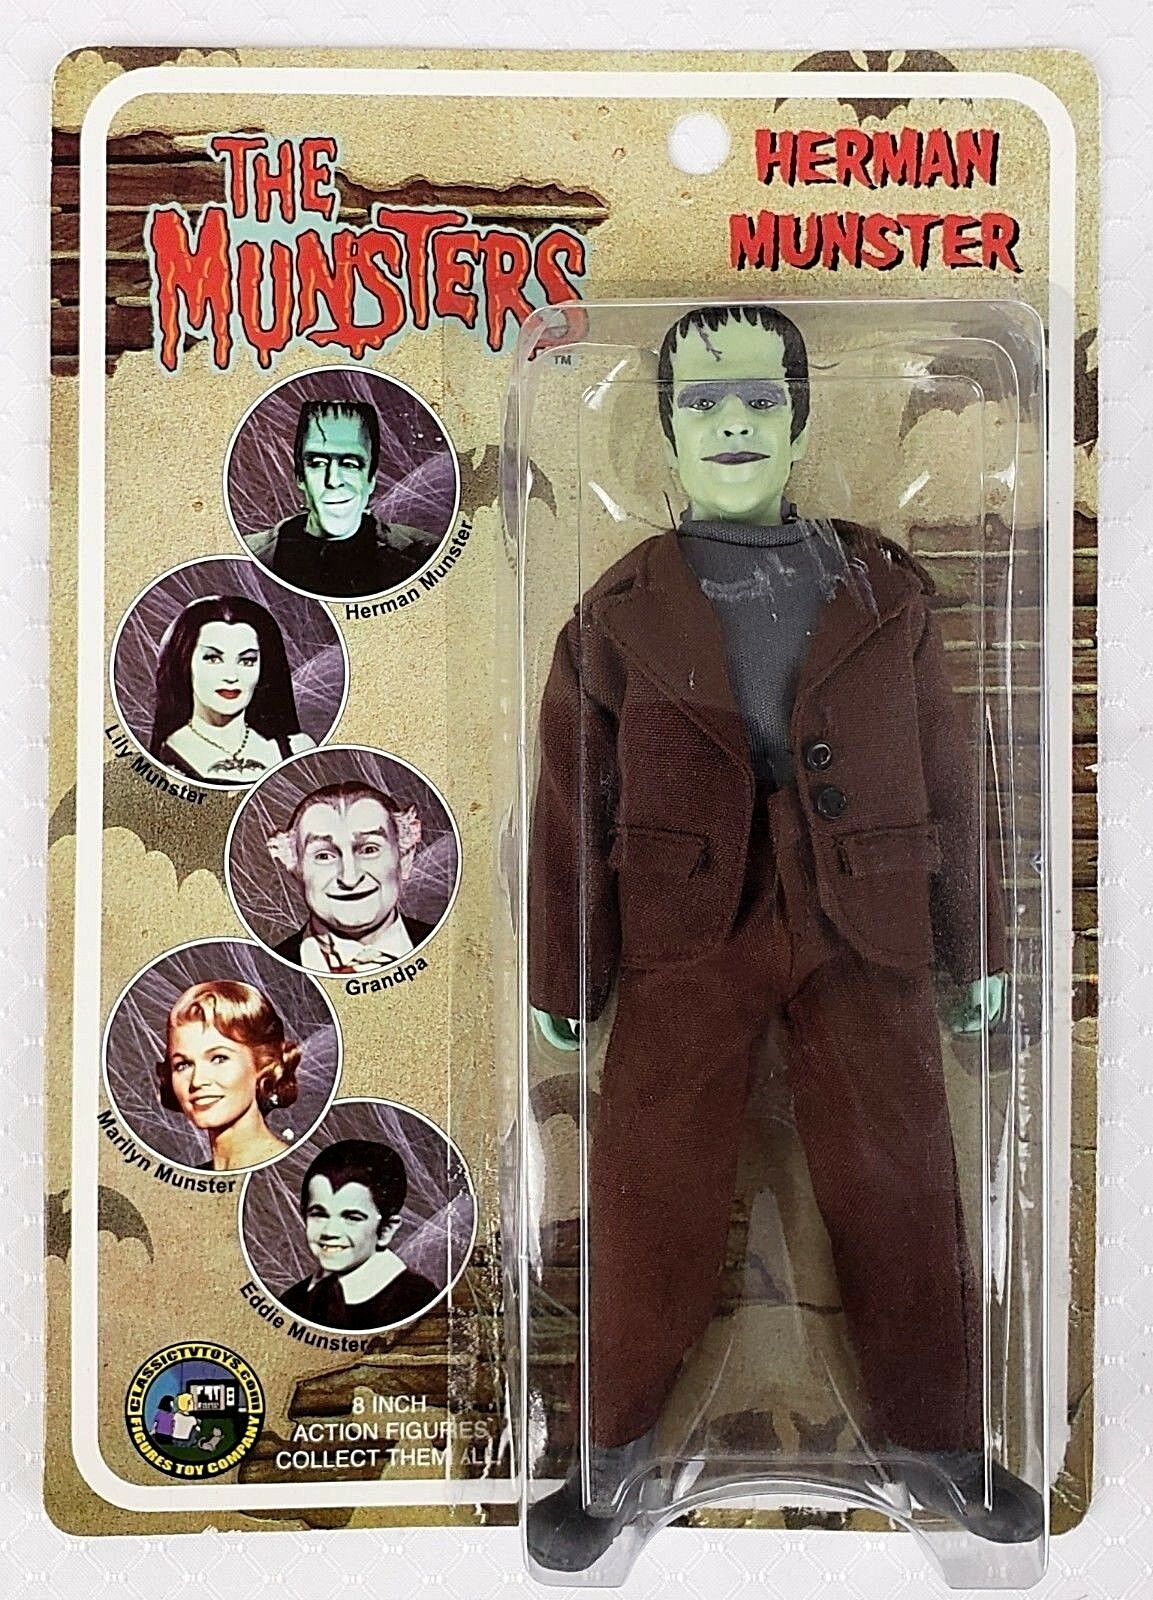 The Munsters Herman Munster 8 Inch Action Figure Classic TV Toys 2004